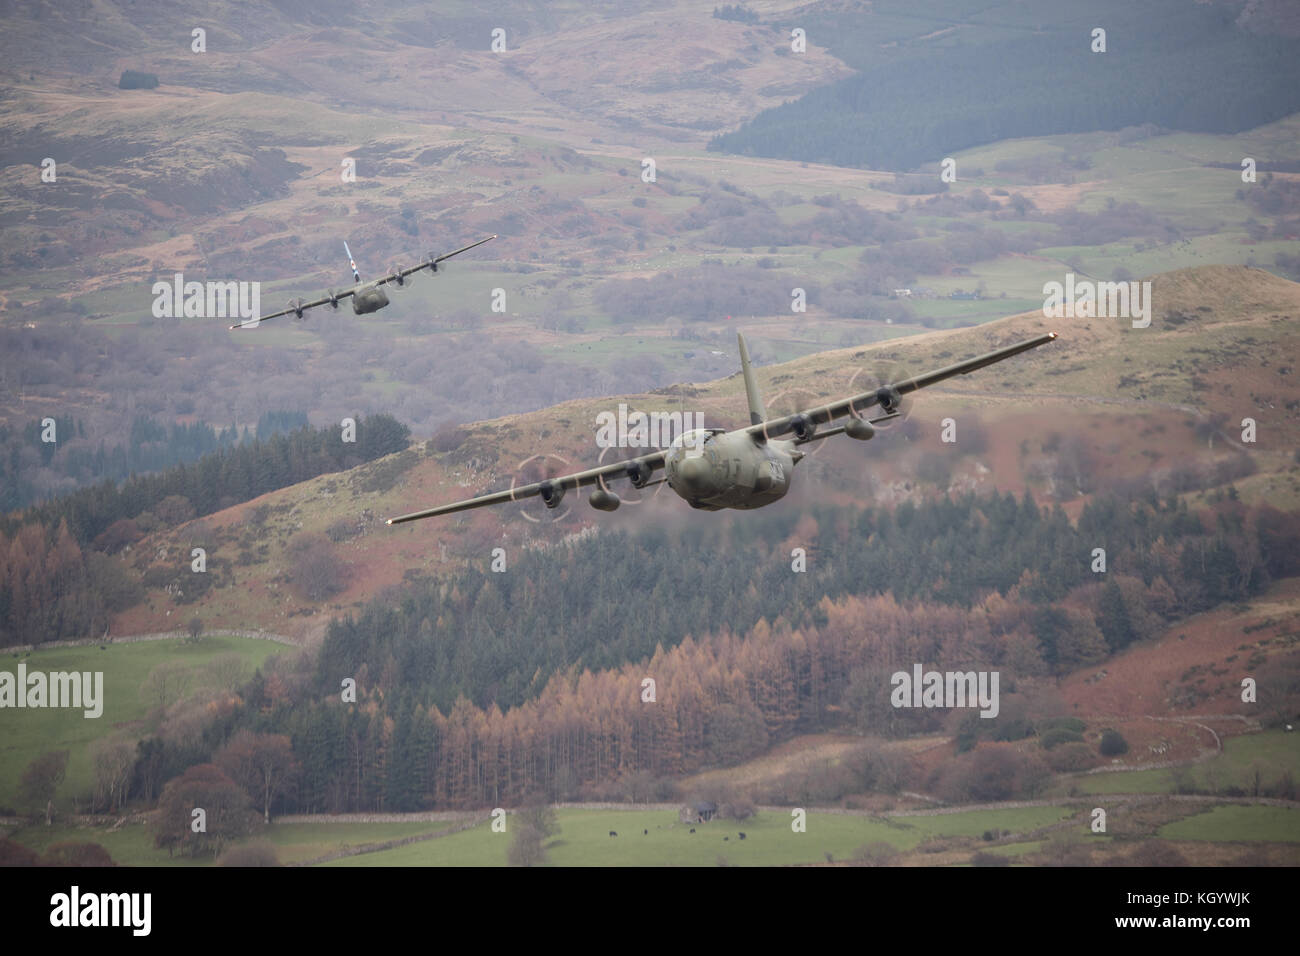 Royal Air Force two ship Hercules Flight conducting low flying training sortie in Snowdonia. - Stock Image